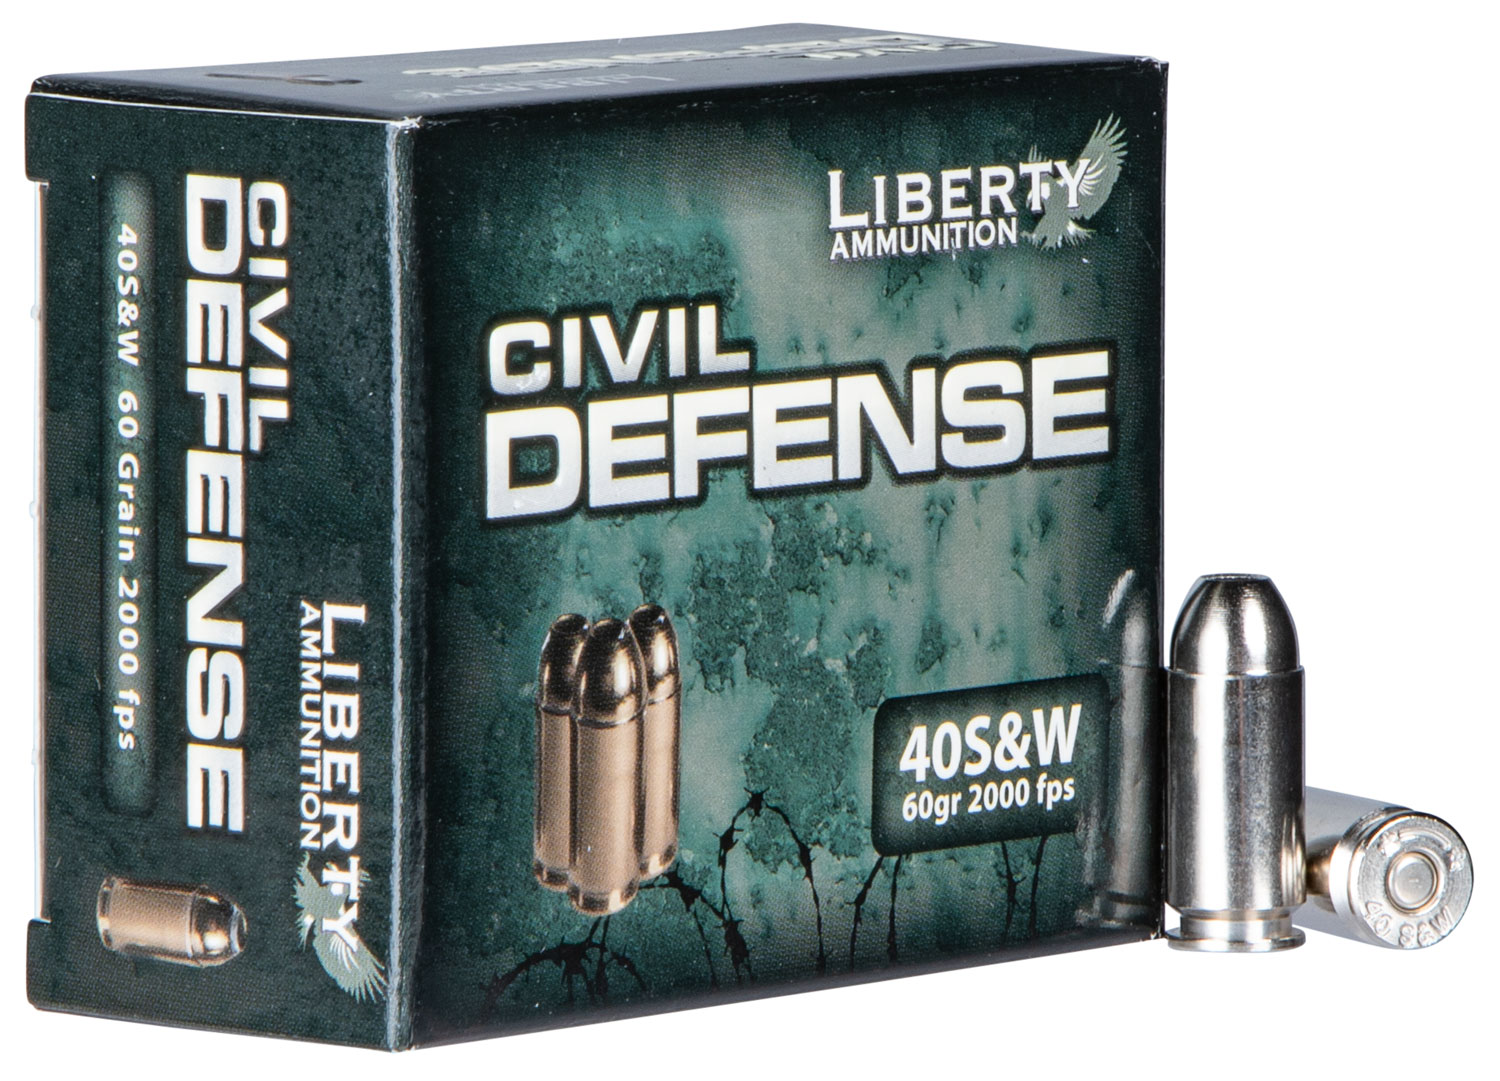 Liberty LA-CD-40-012 Civil Defense 40S&W 2000fps 60GR Lead-Free 20Bx/50Cs